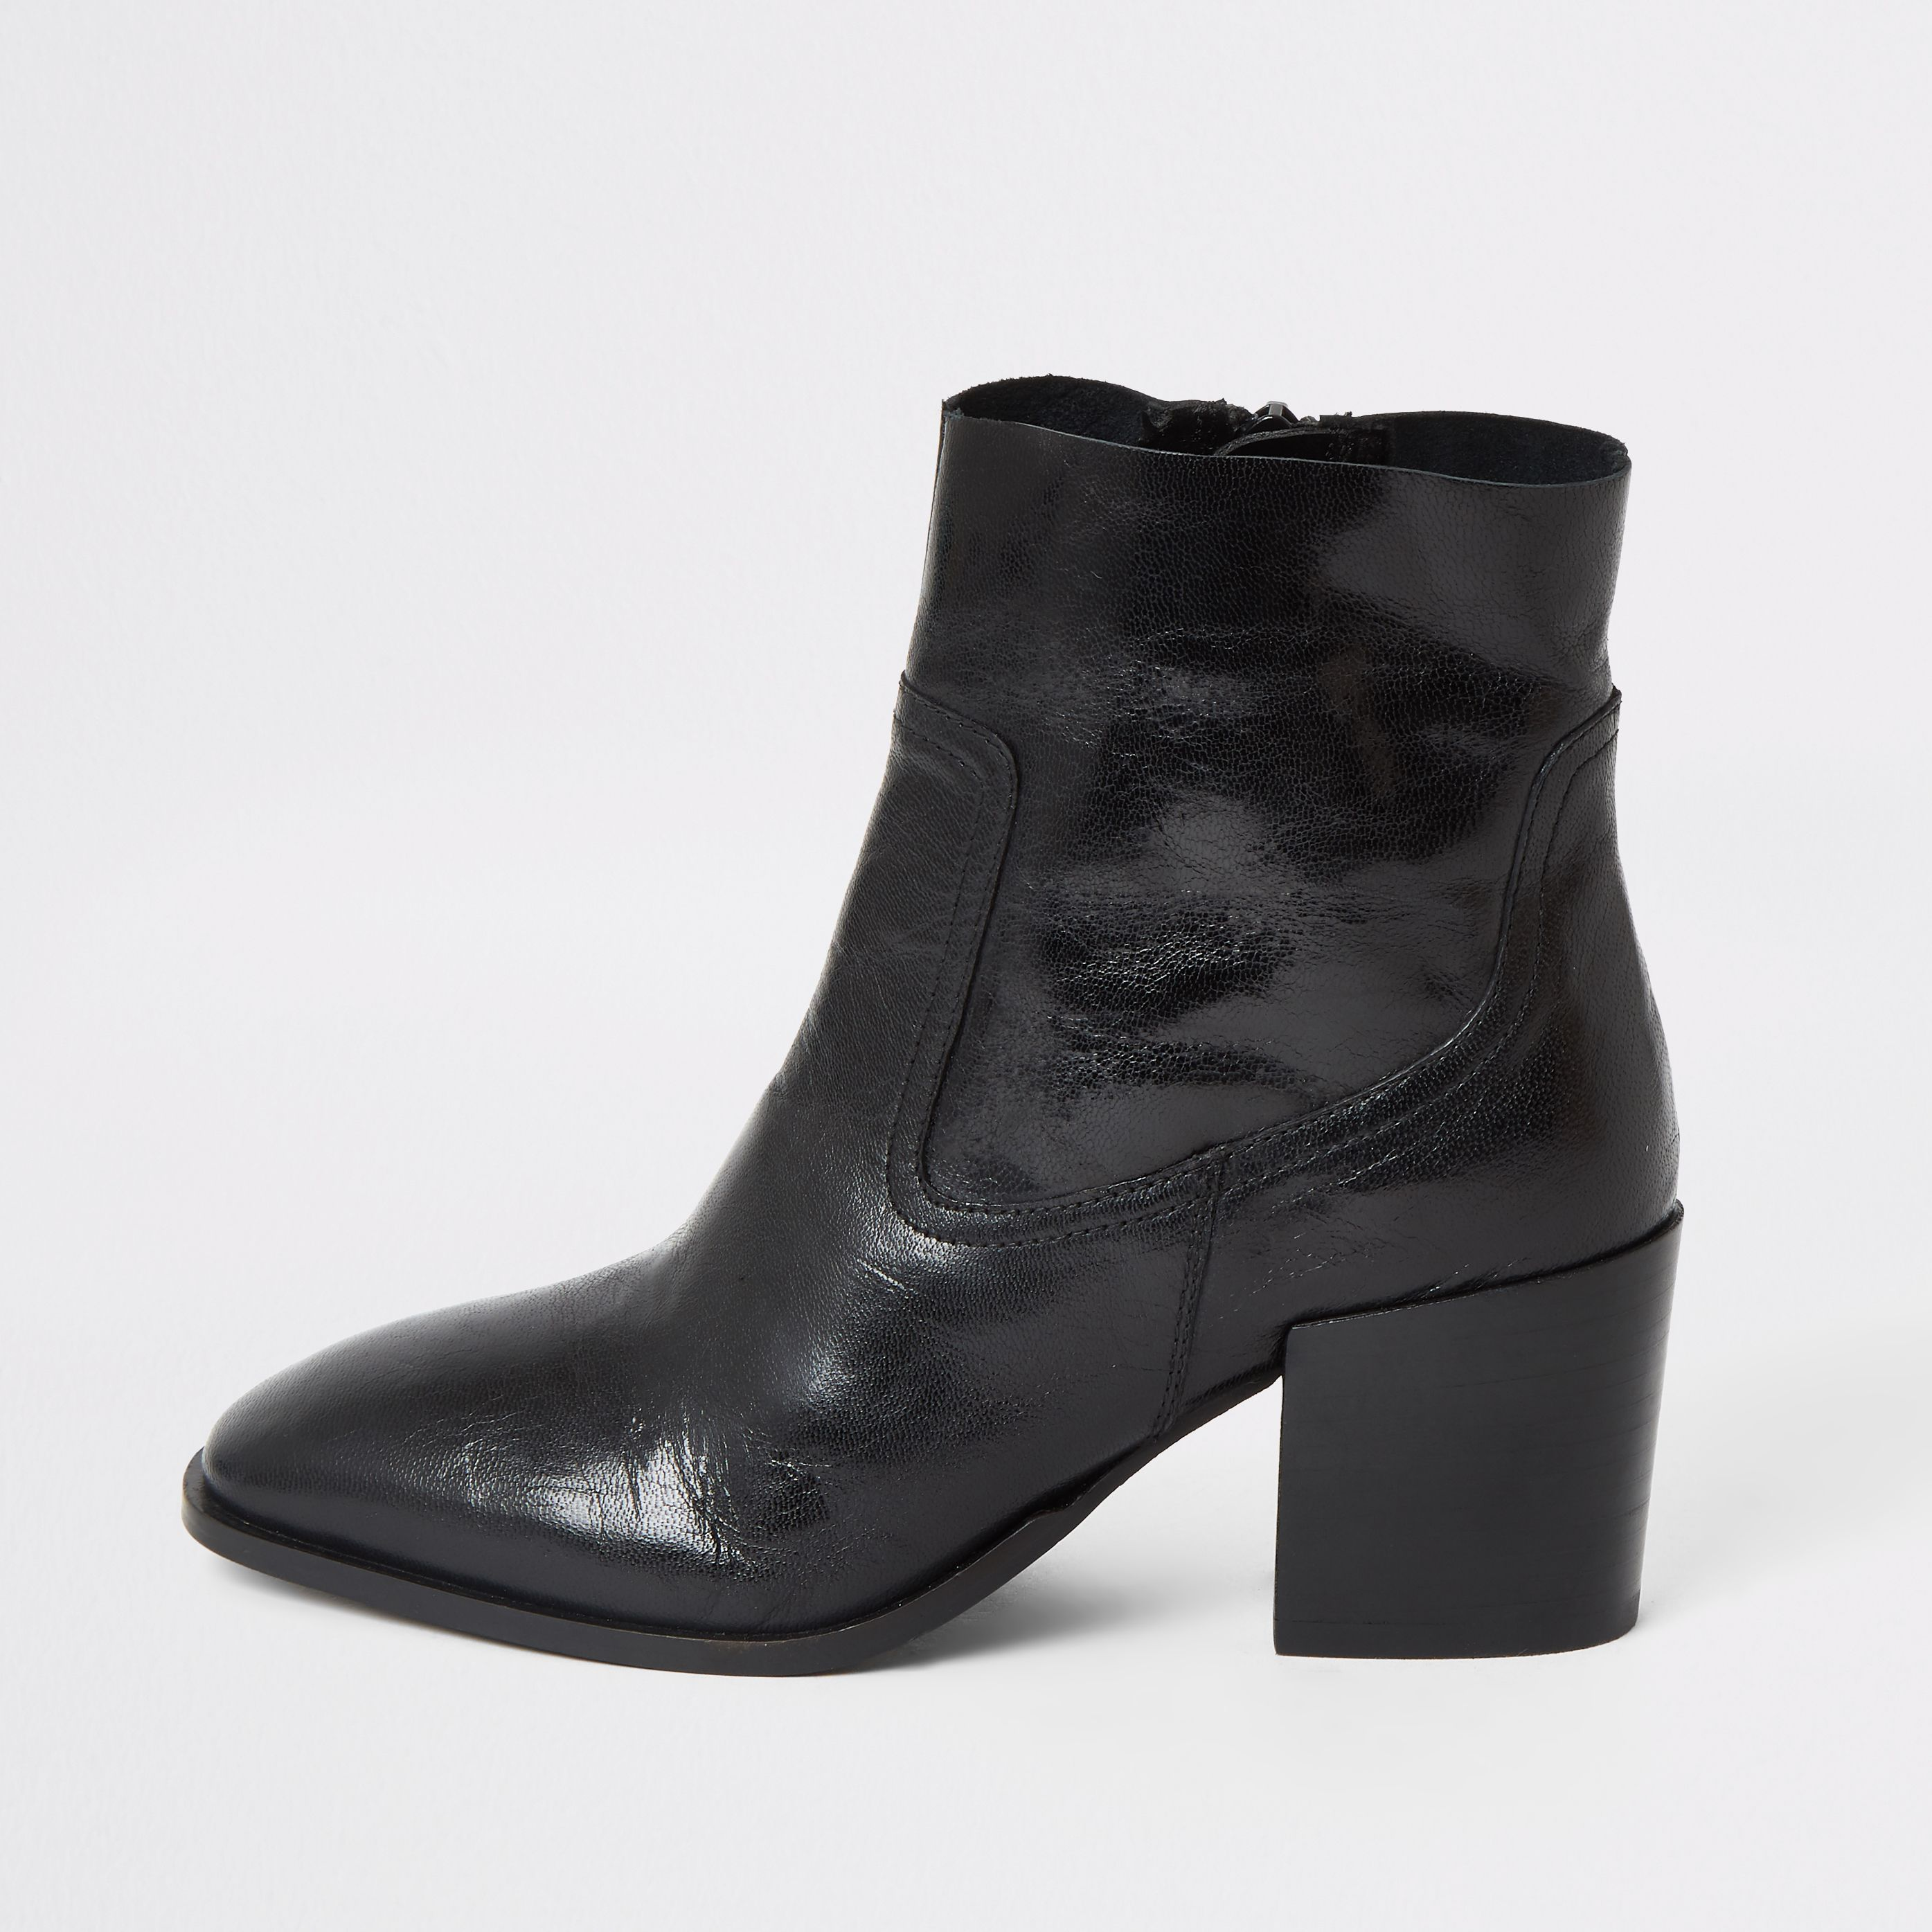 Black leather heeled ankle boots in